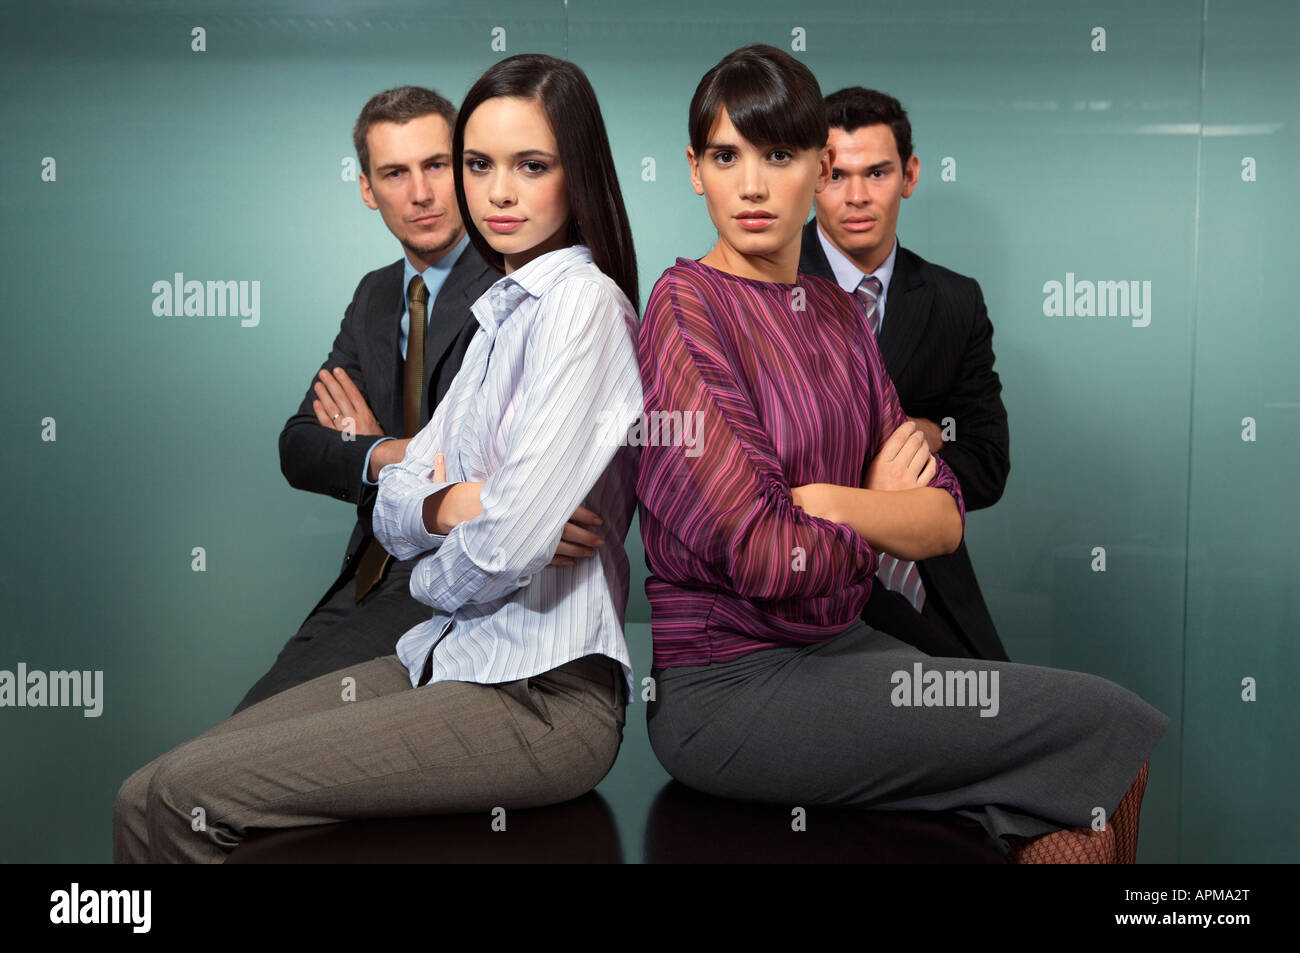 Portrait of business people Stock Photo